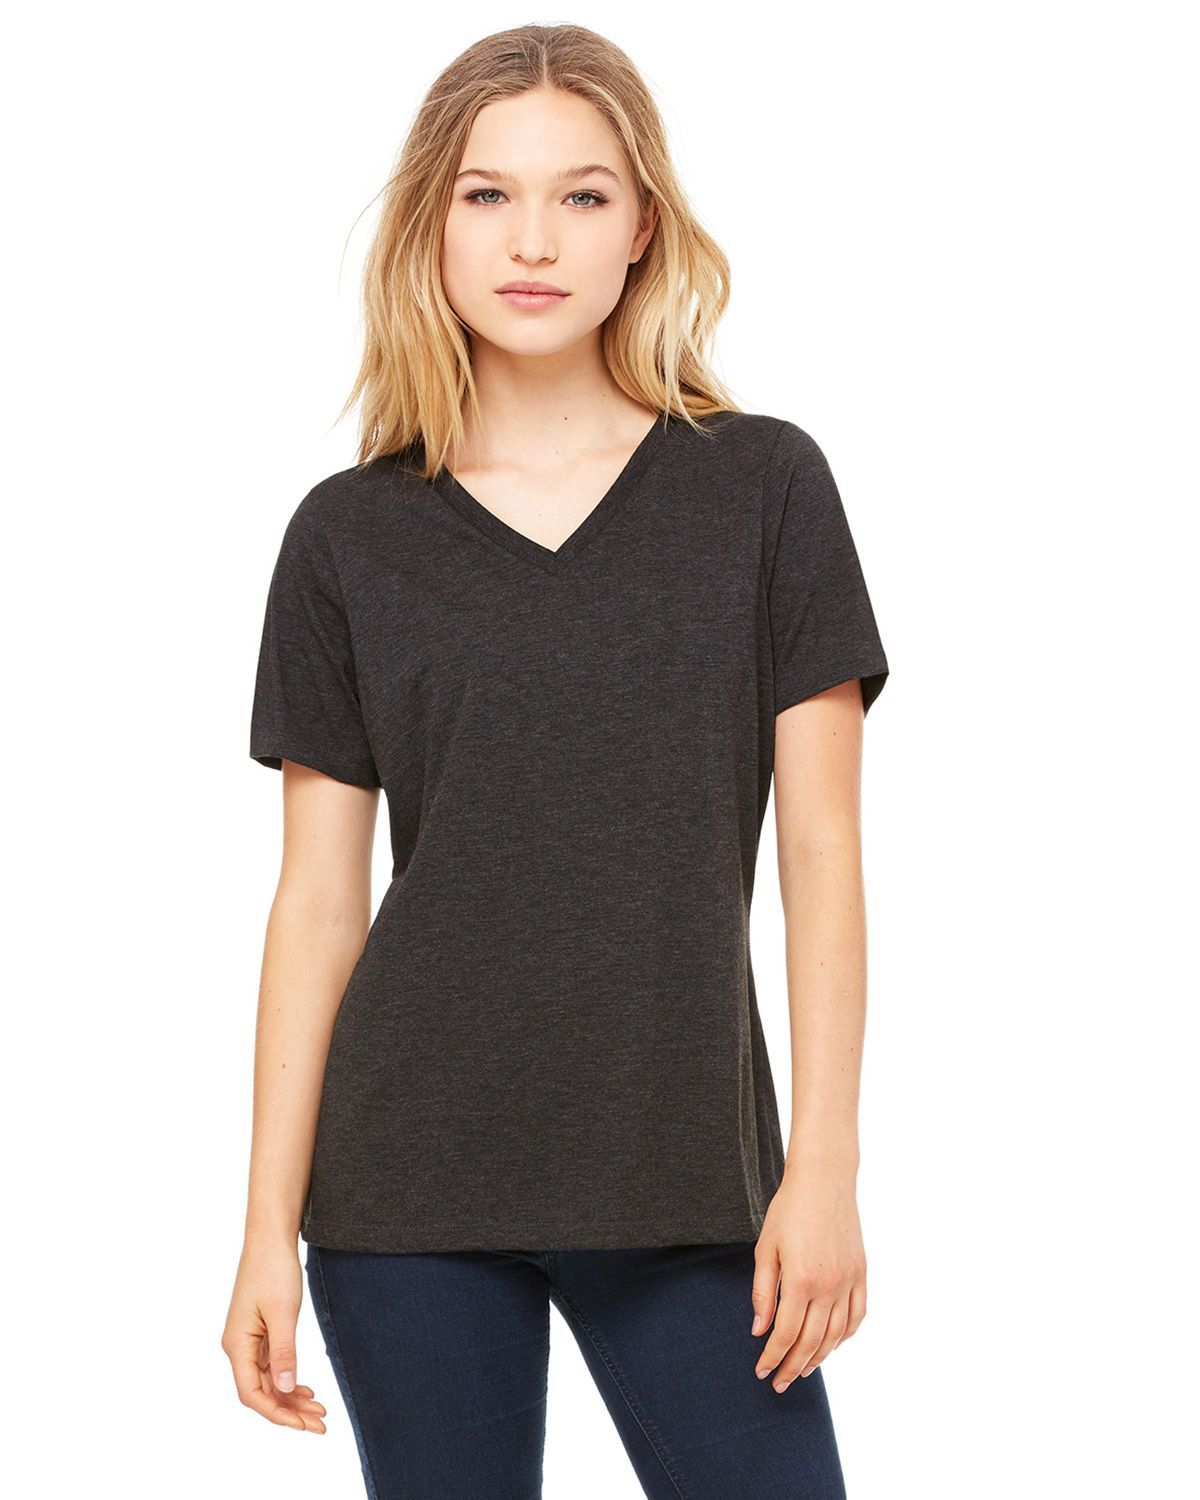 Bella + Canvas 6405 Women's Missys Relaxed Jersey T-Shirt - Charcoal Black Triblend - S from Bella + Canvas